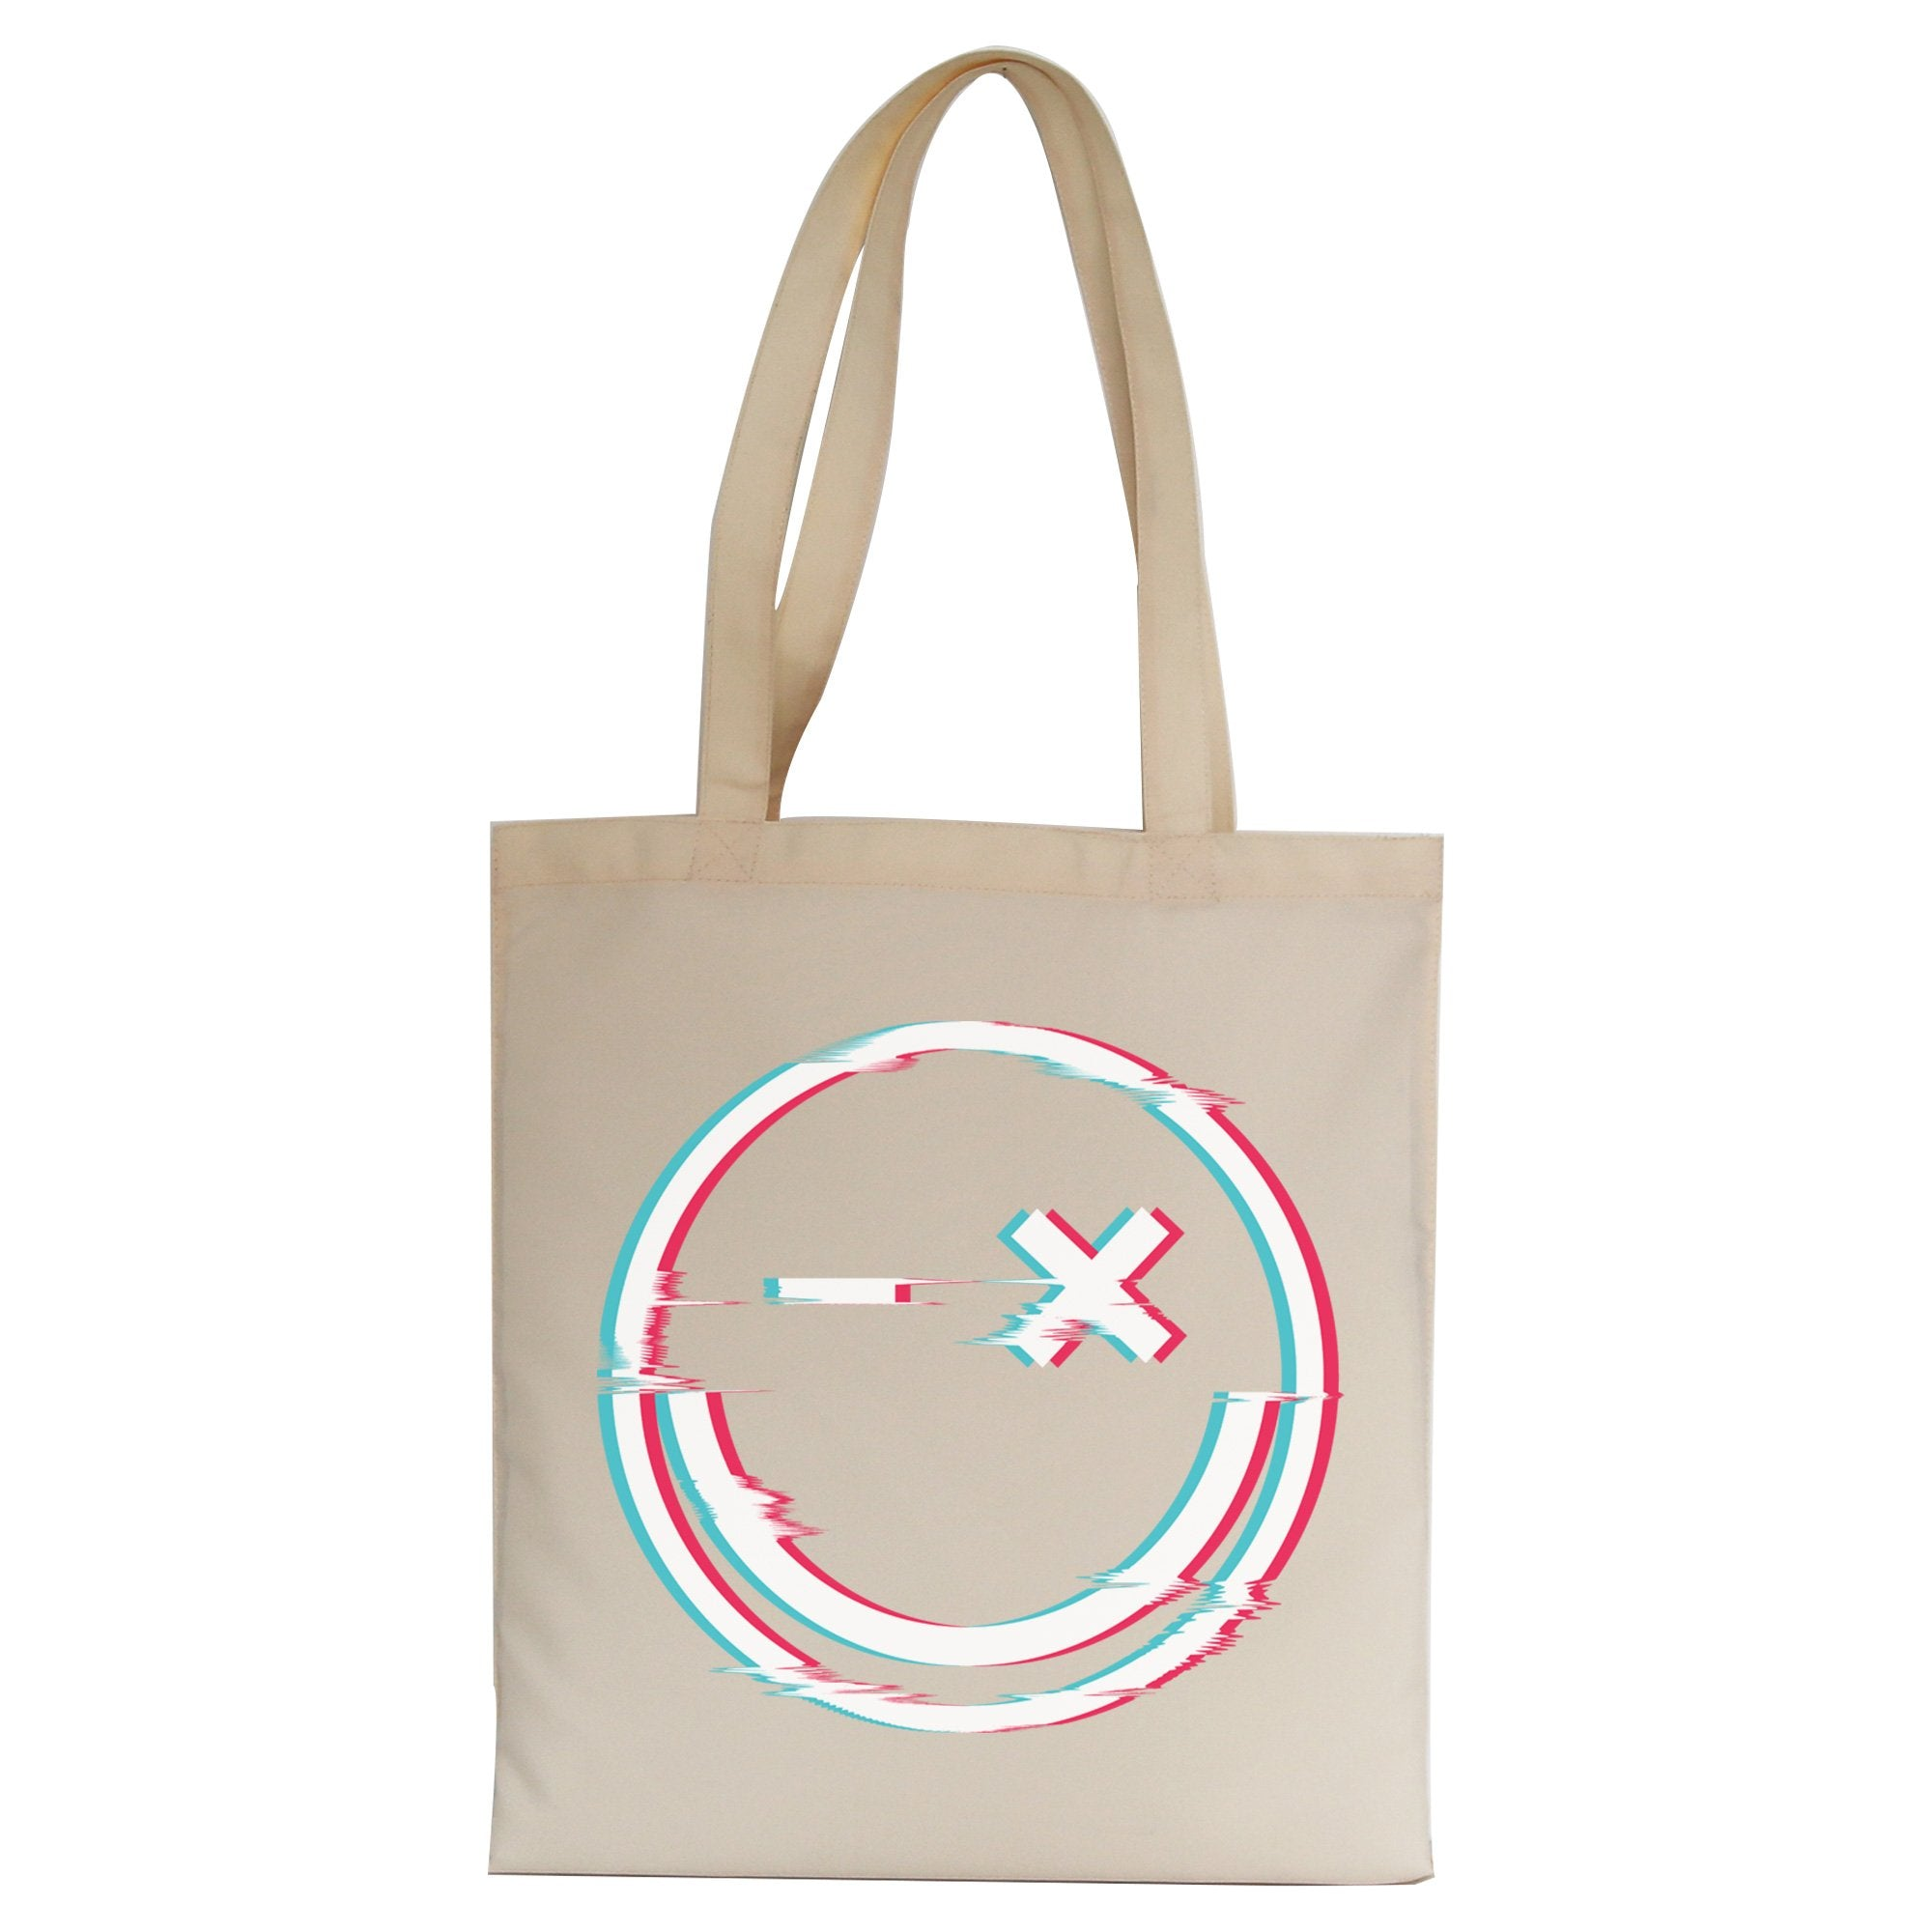 Smile glitch tote bag